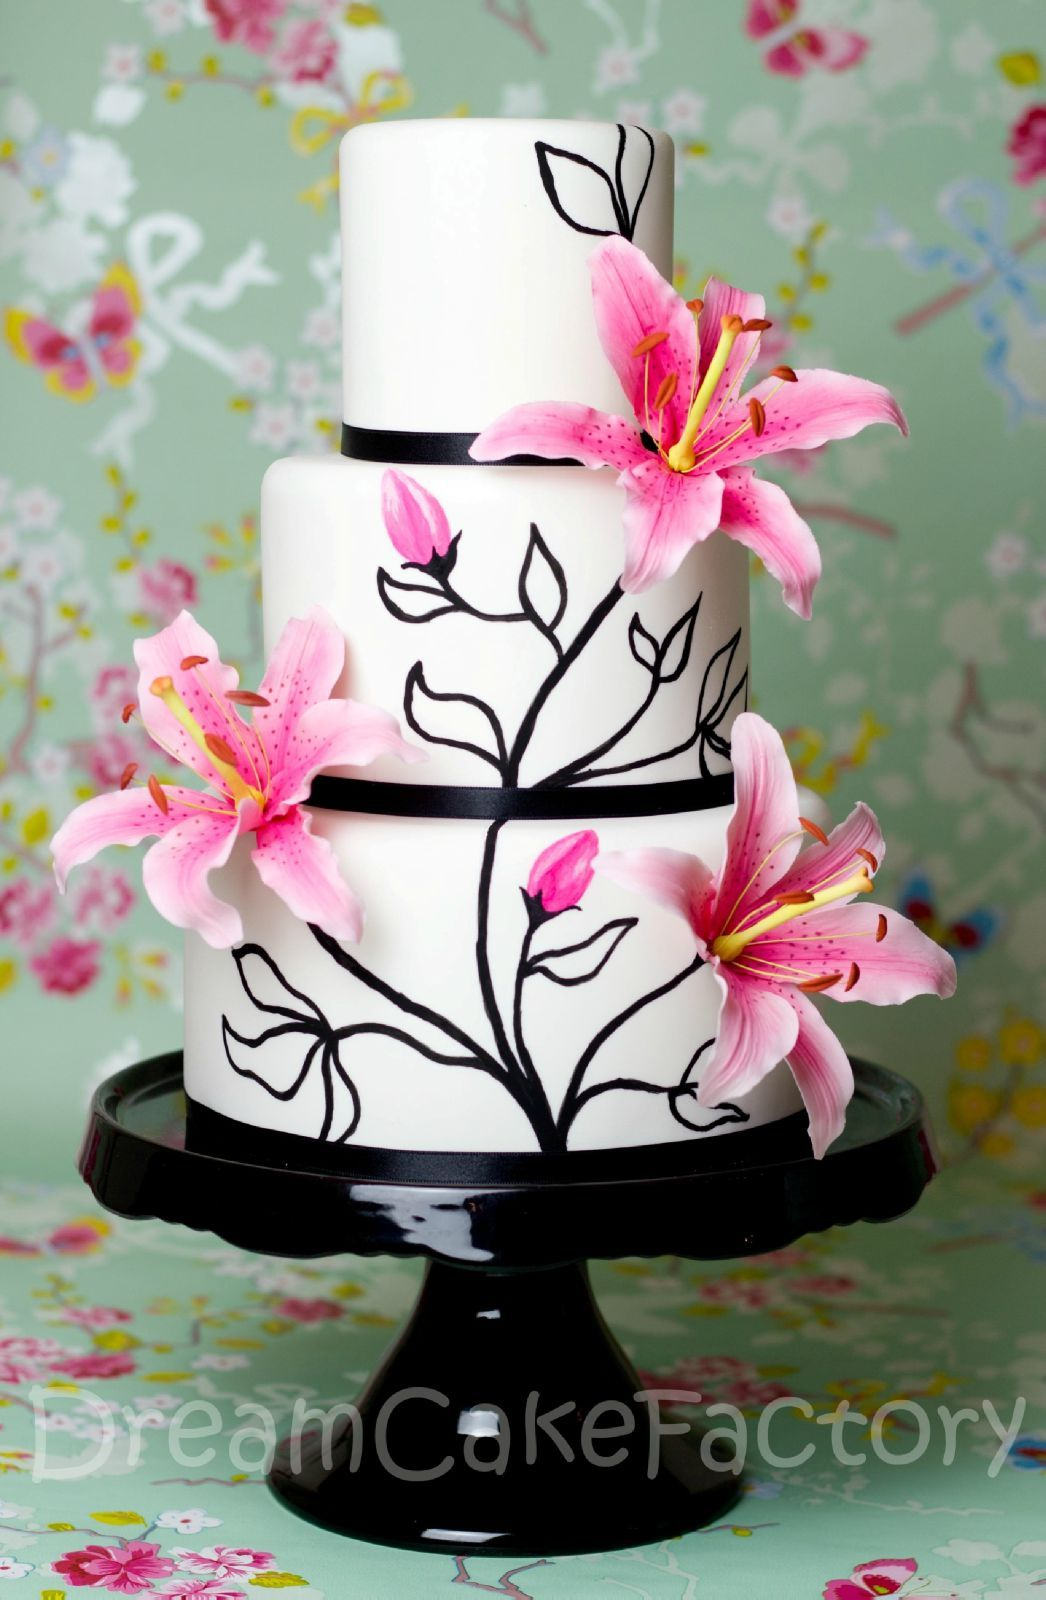 One Of The Most Beautiful Cakes Ever Seen Got To Learn How To Make